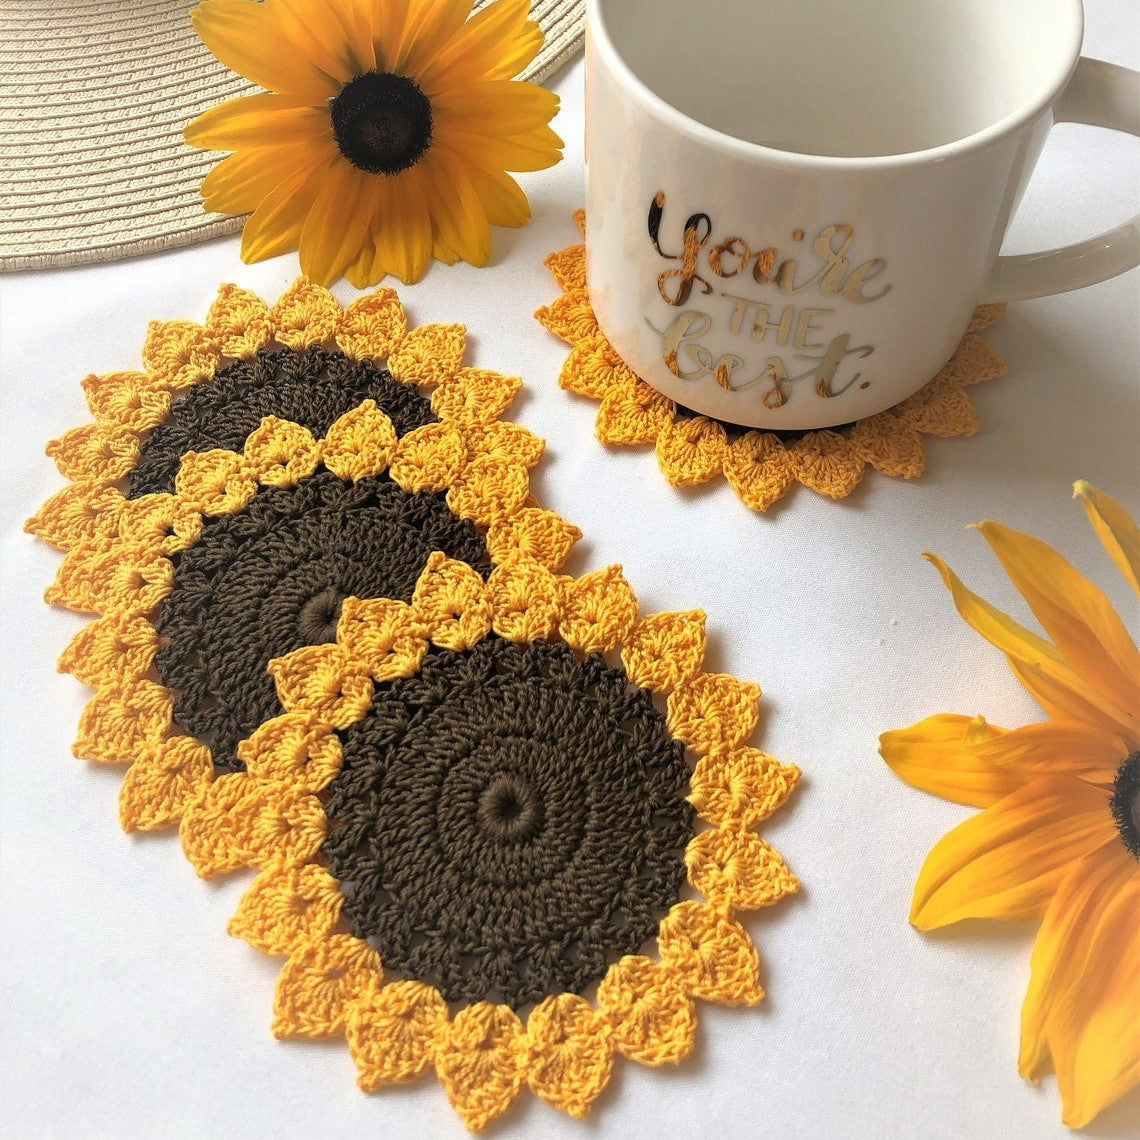 Handmade Crochet Sunflower Coaster | Drinking Wares Accessories